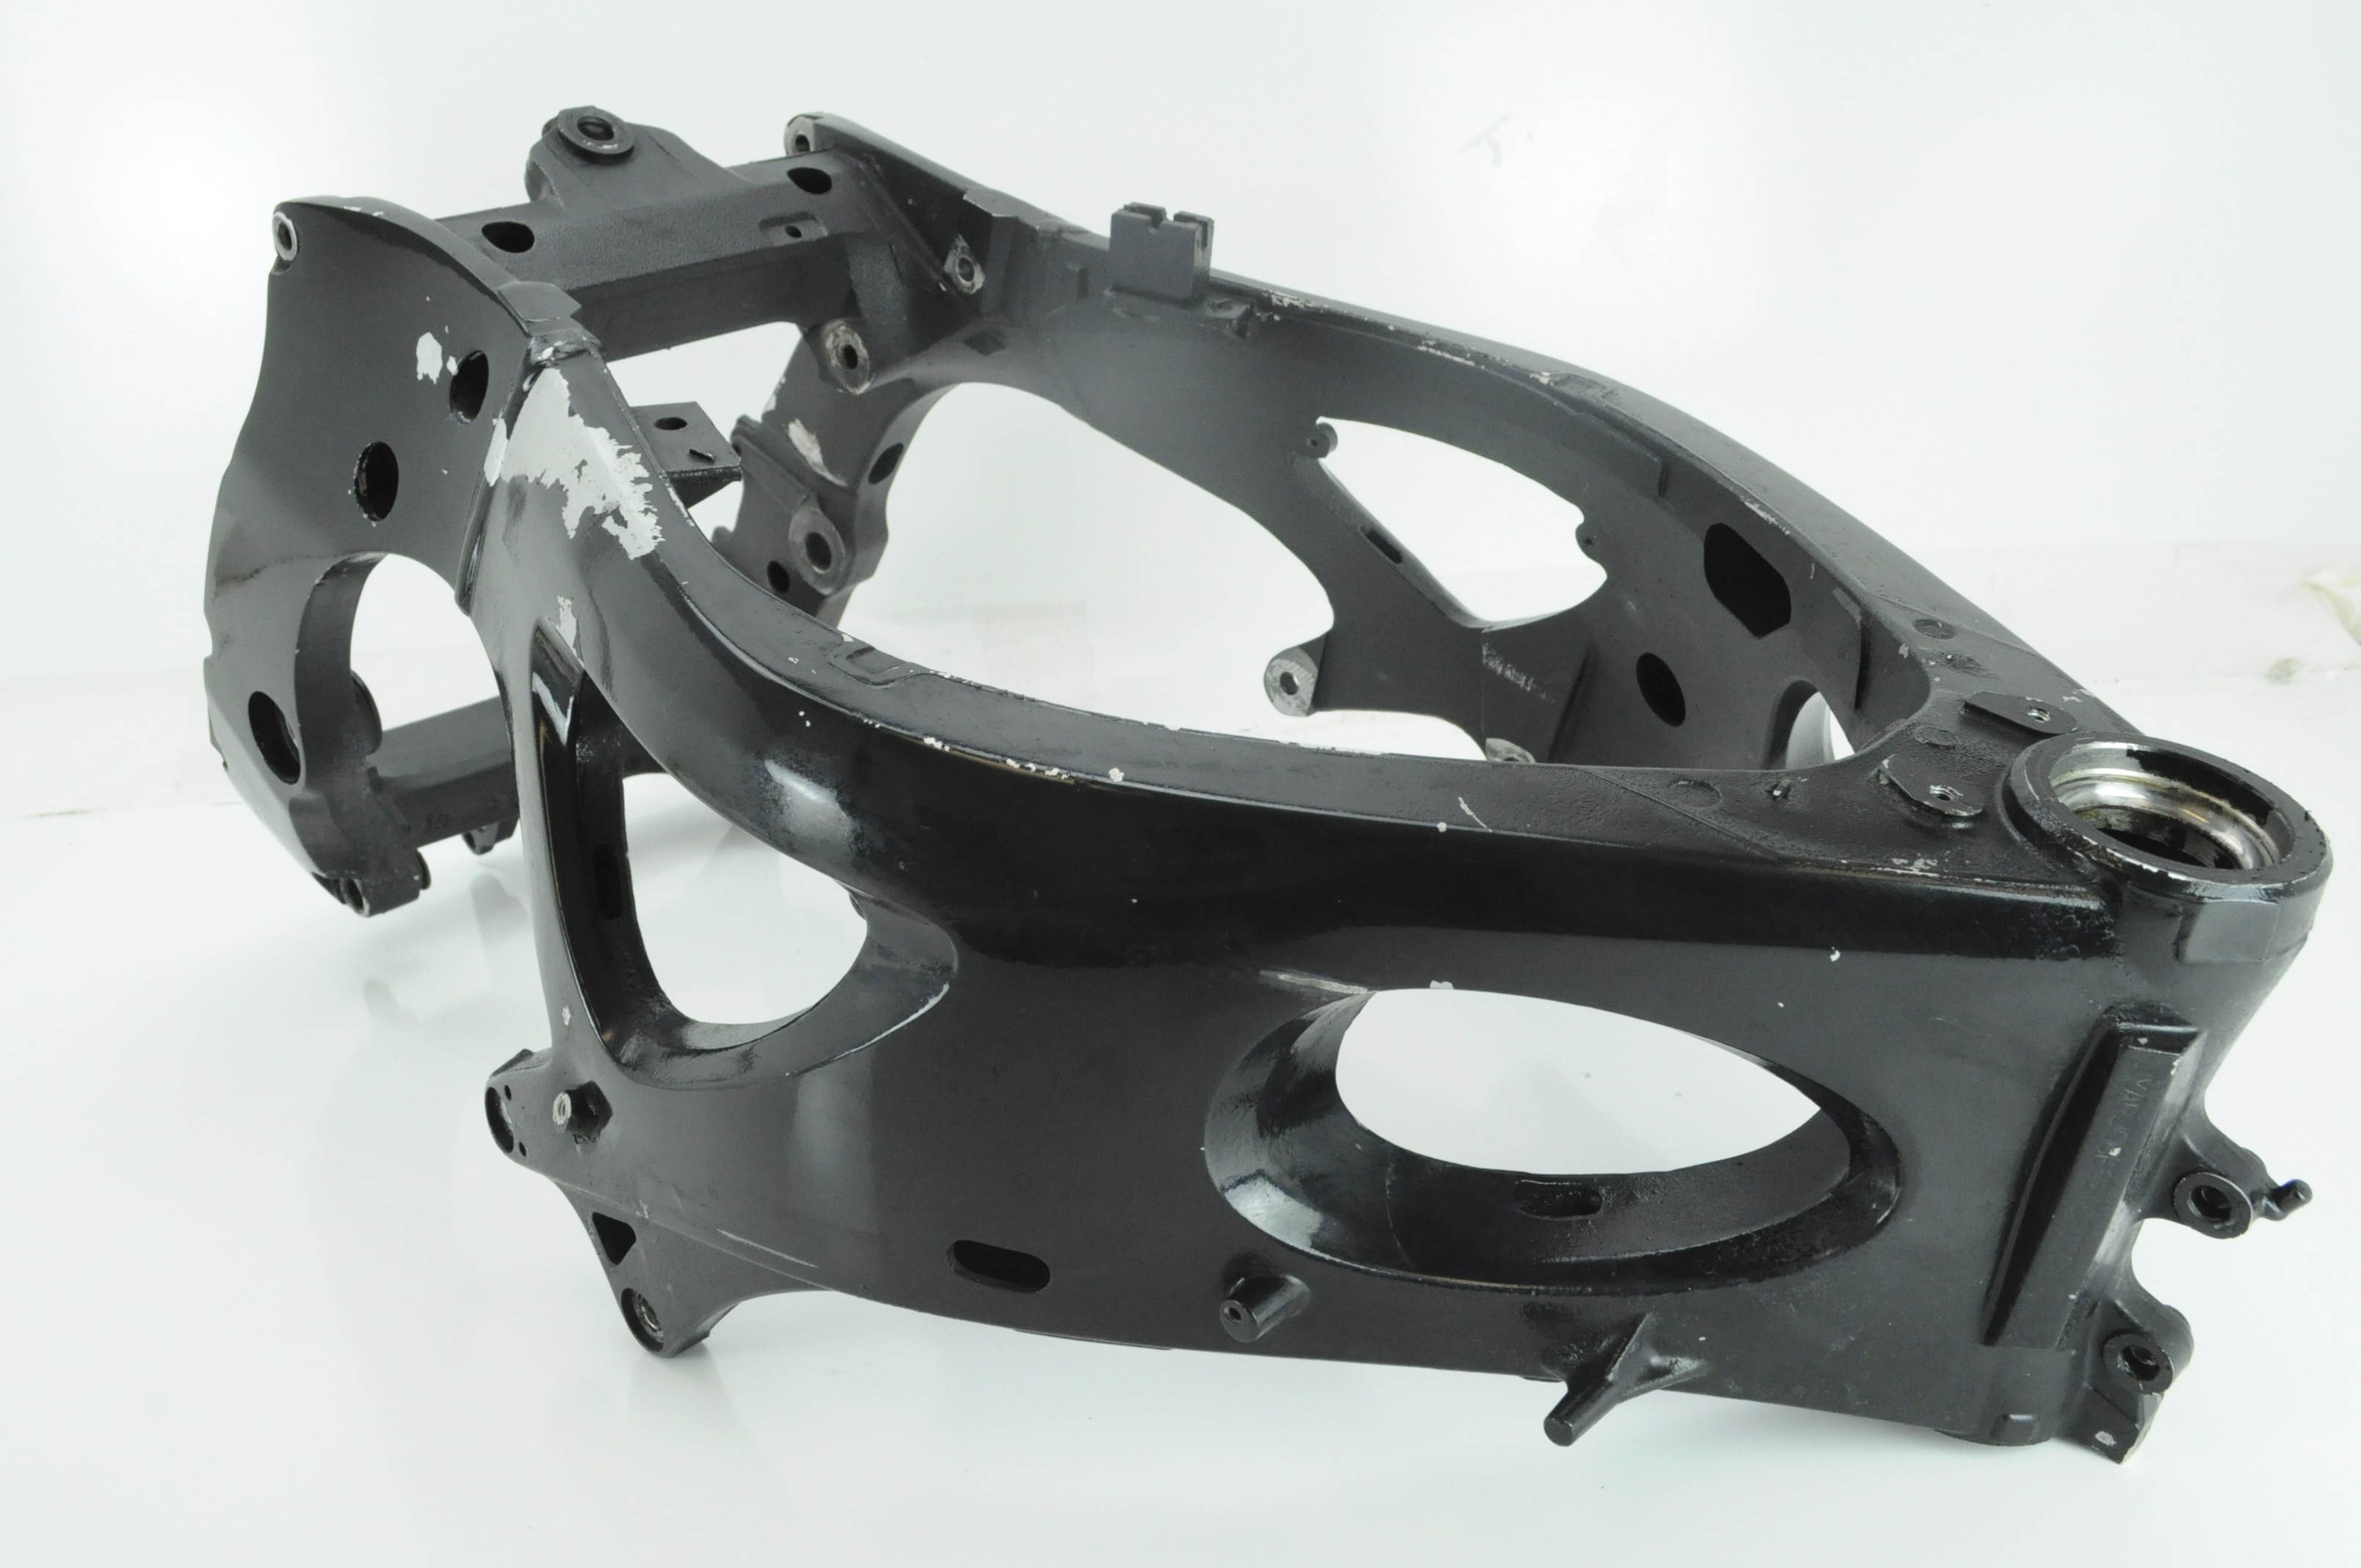 04 05 06 07 yamaha yzf600r6s motorcycle frame for sale clear title r6 frame - Motorcycle Frame For Sale